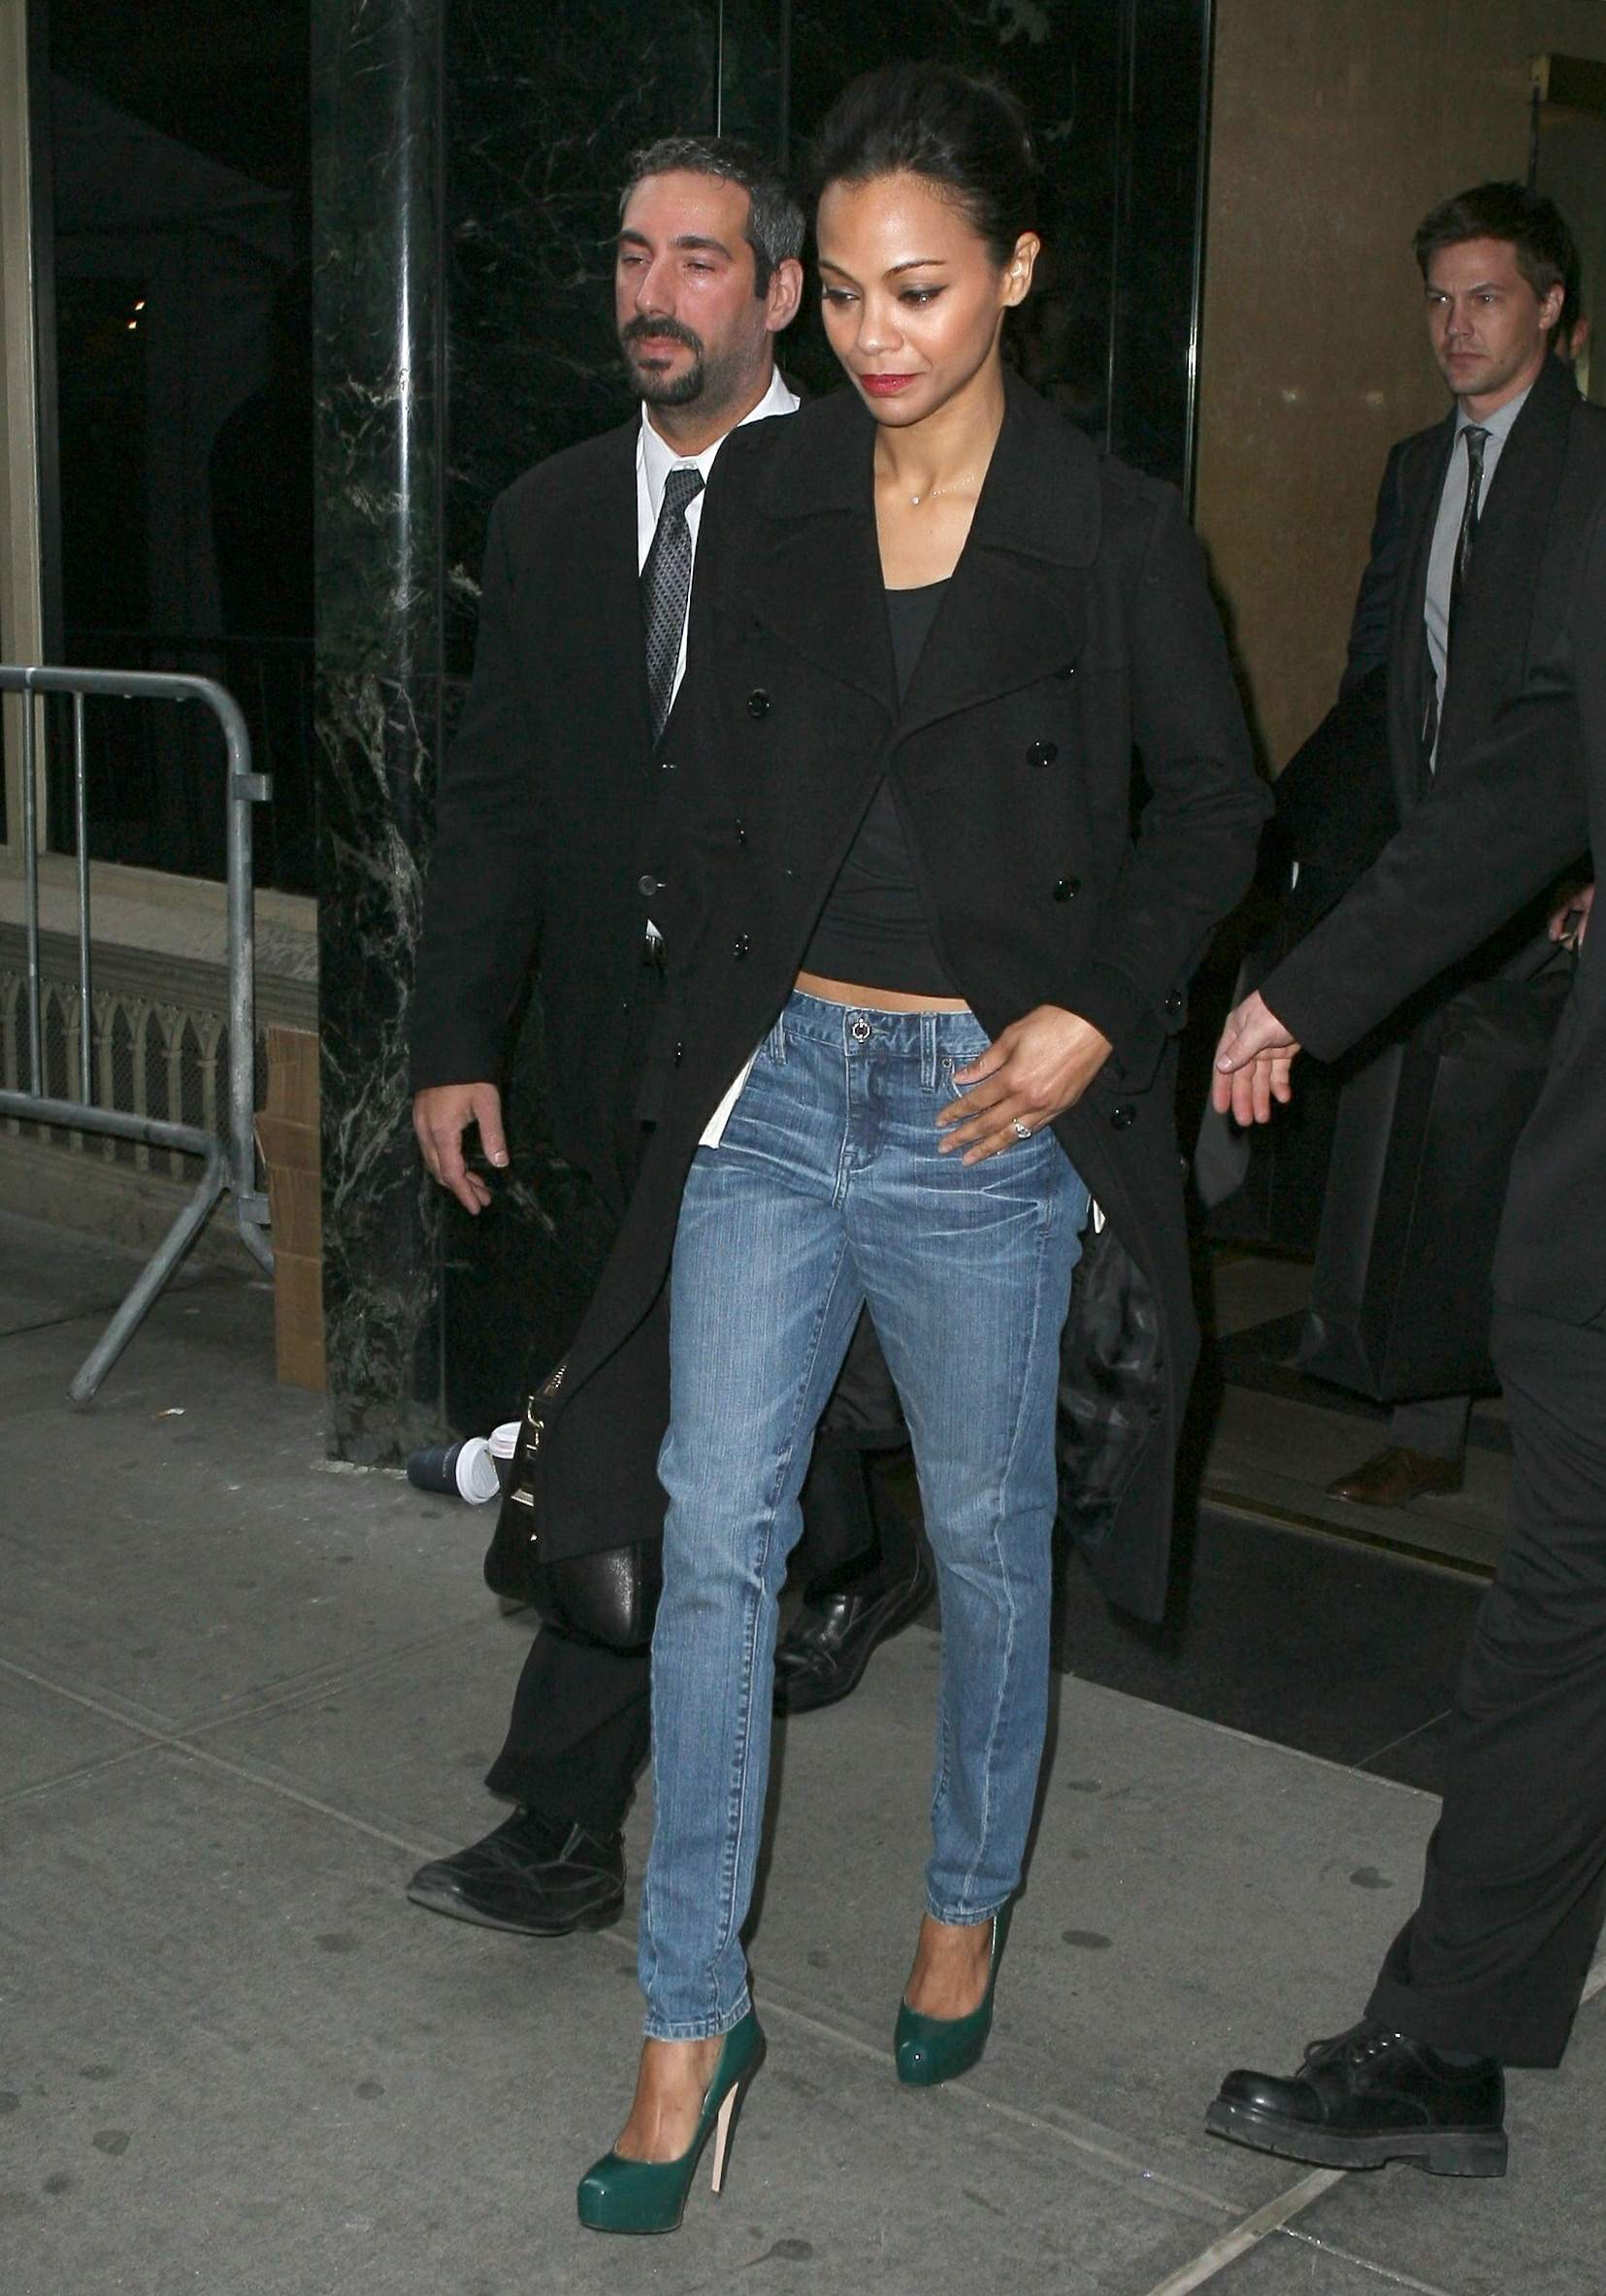 Zoe Saldana leaving the Calvin Klein fashion show - February 17, 2011